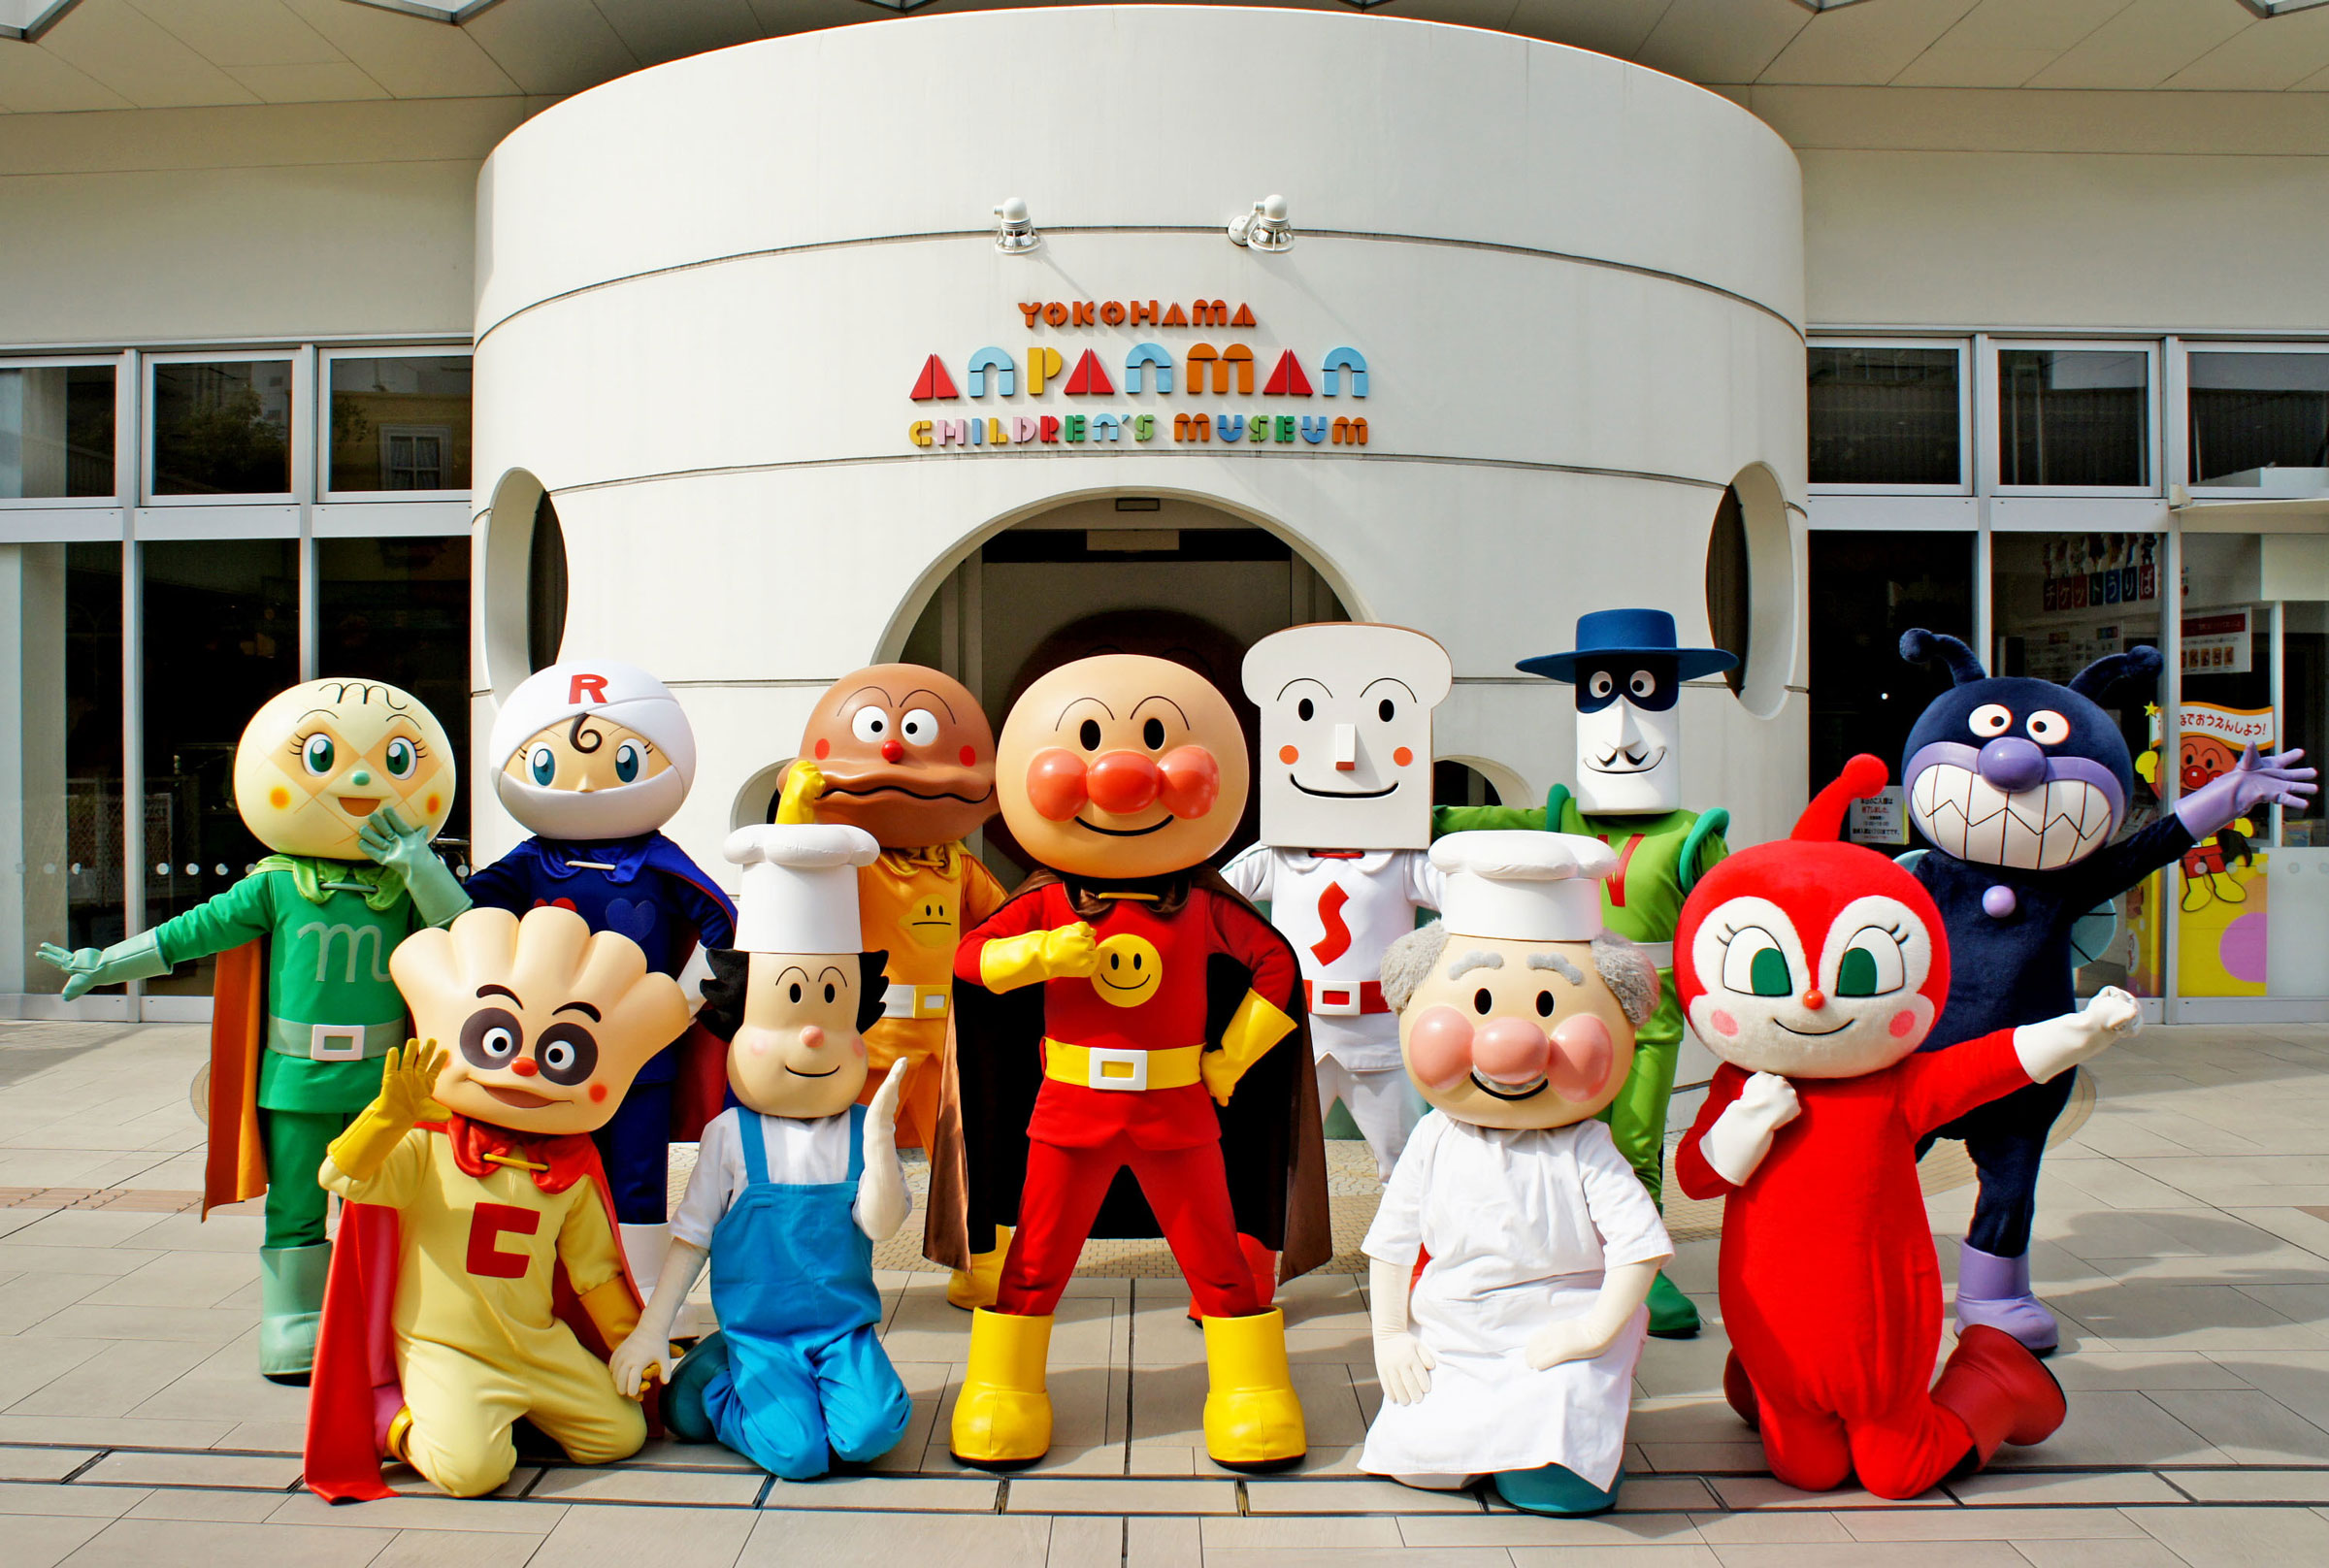 Anpanman Is The Childrens Superhero The Best Thing Since Sliced Bread